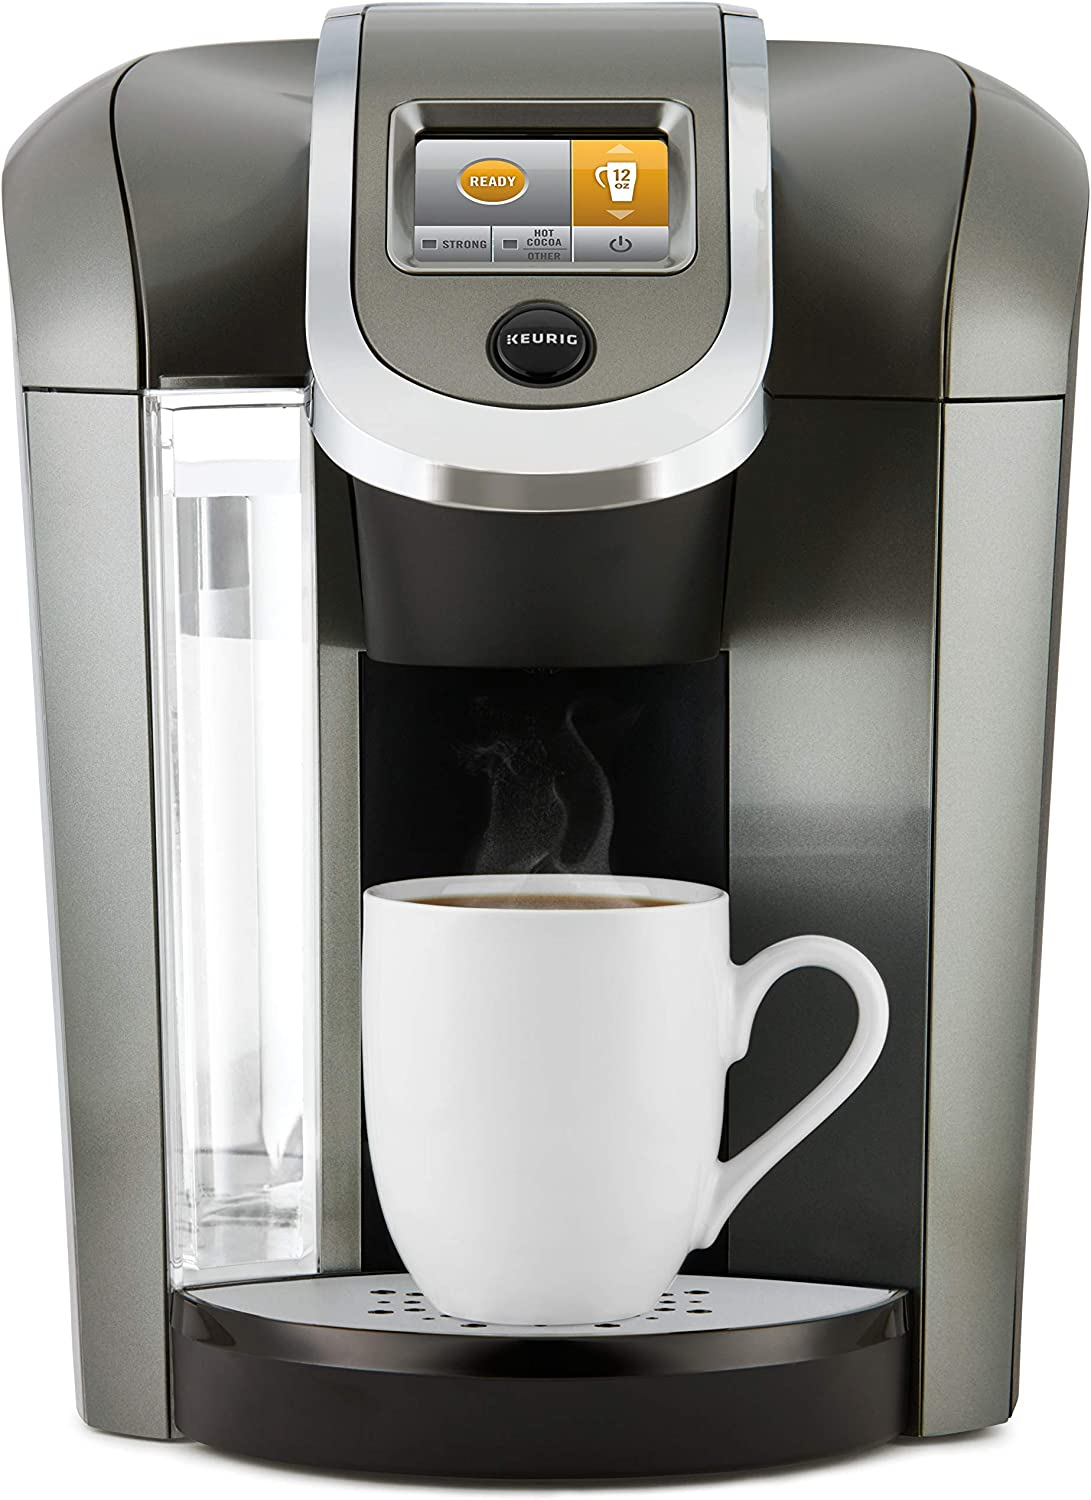 Keurig K500 Coffee Maker, Single Serve K-Cup Pod Coffee Brewer, Programmable Brewer, Black (Renewed)